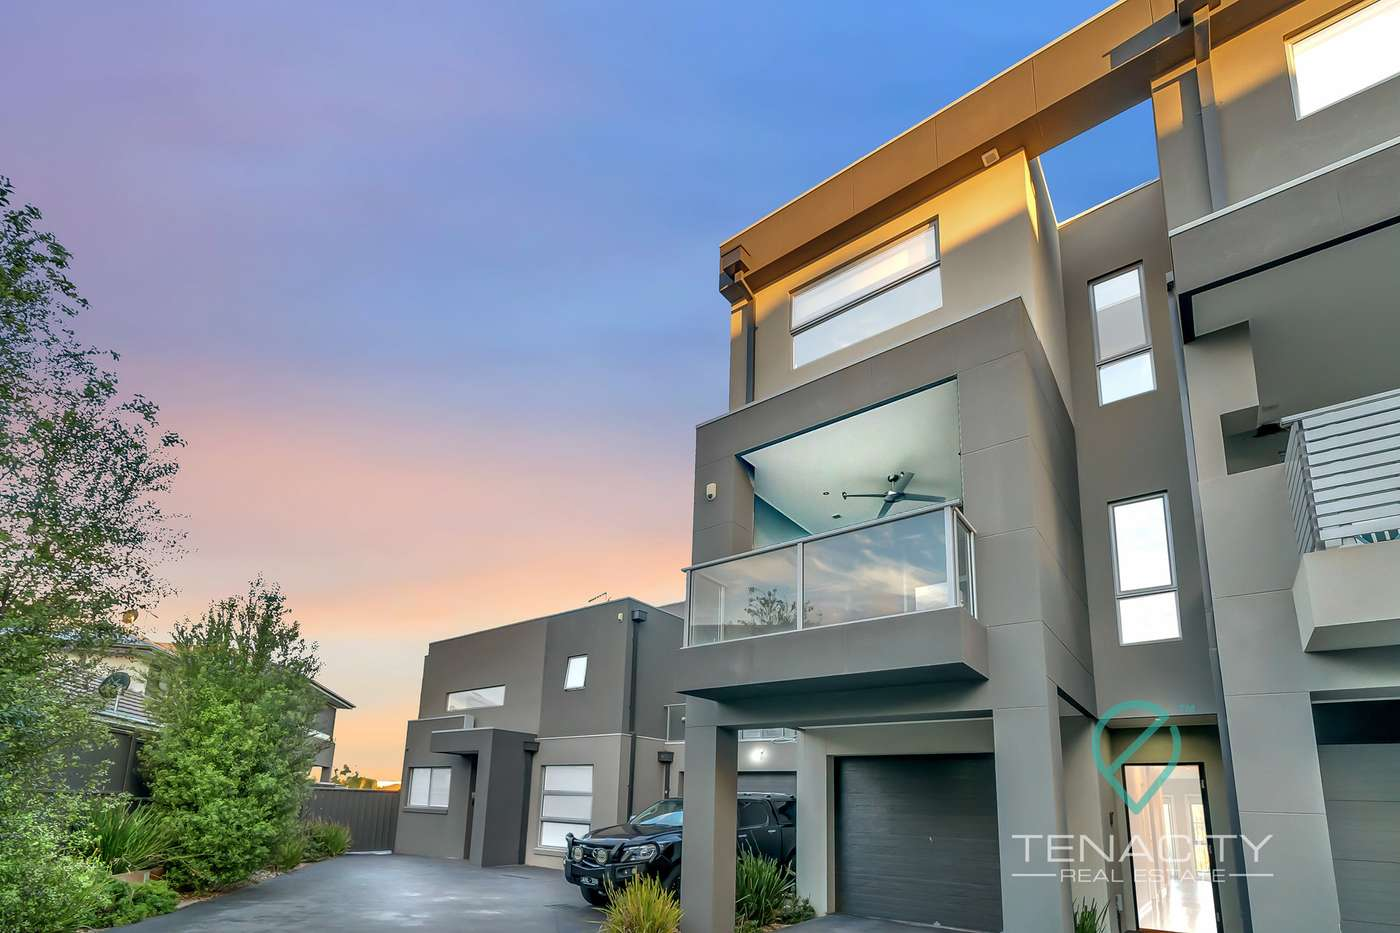 Main view of Homely townhouse listing, 11/13 Greville Street, Caroline Springs, VIC 3023